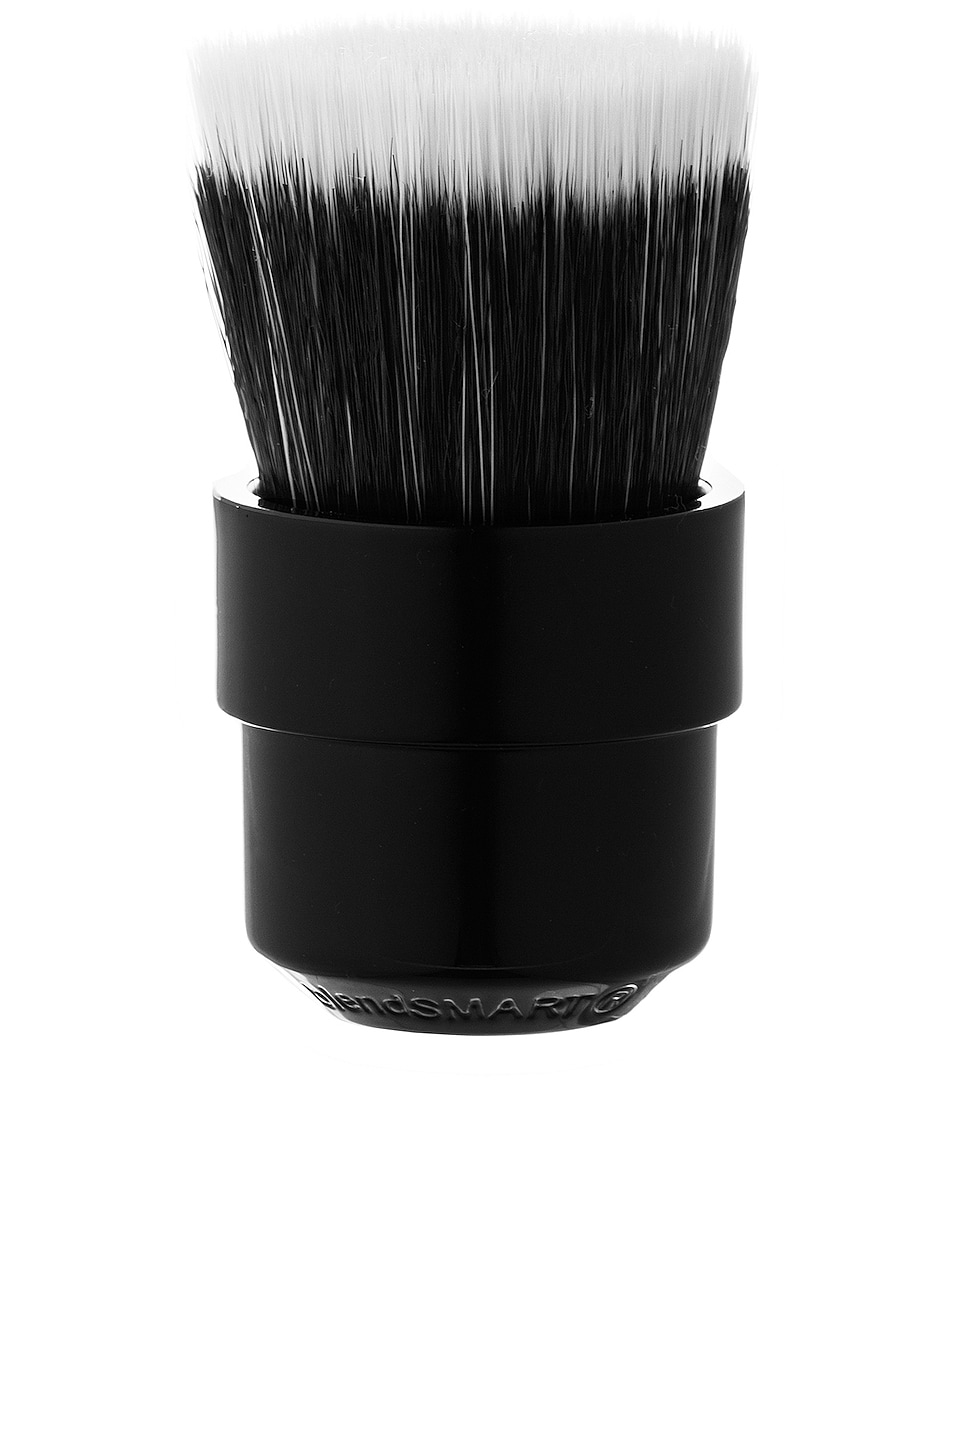 blendSMART blendSMART2 Foundation Brush Head